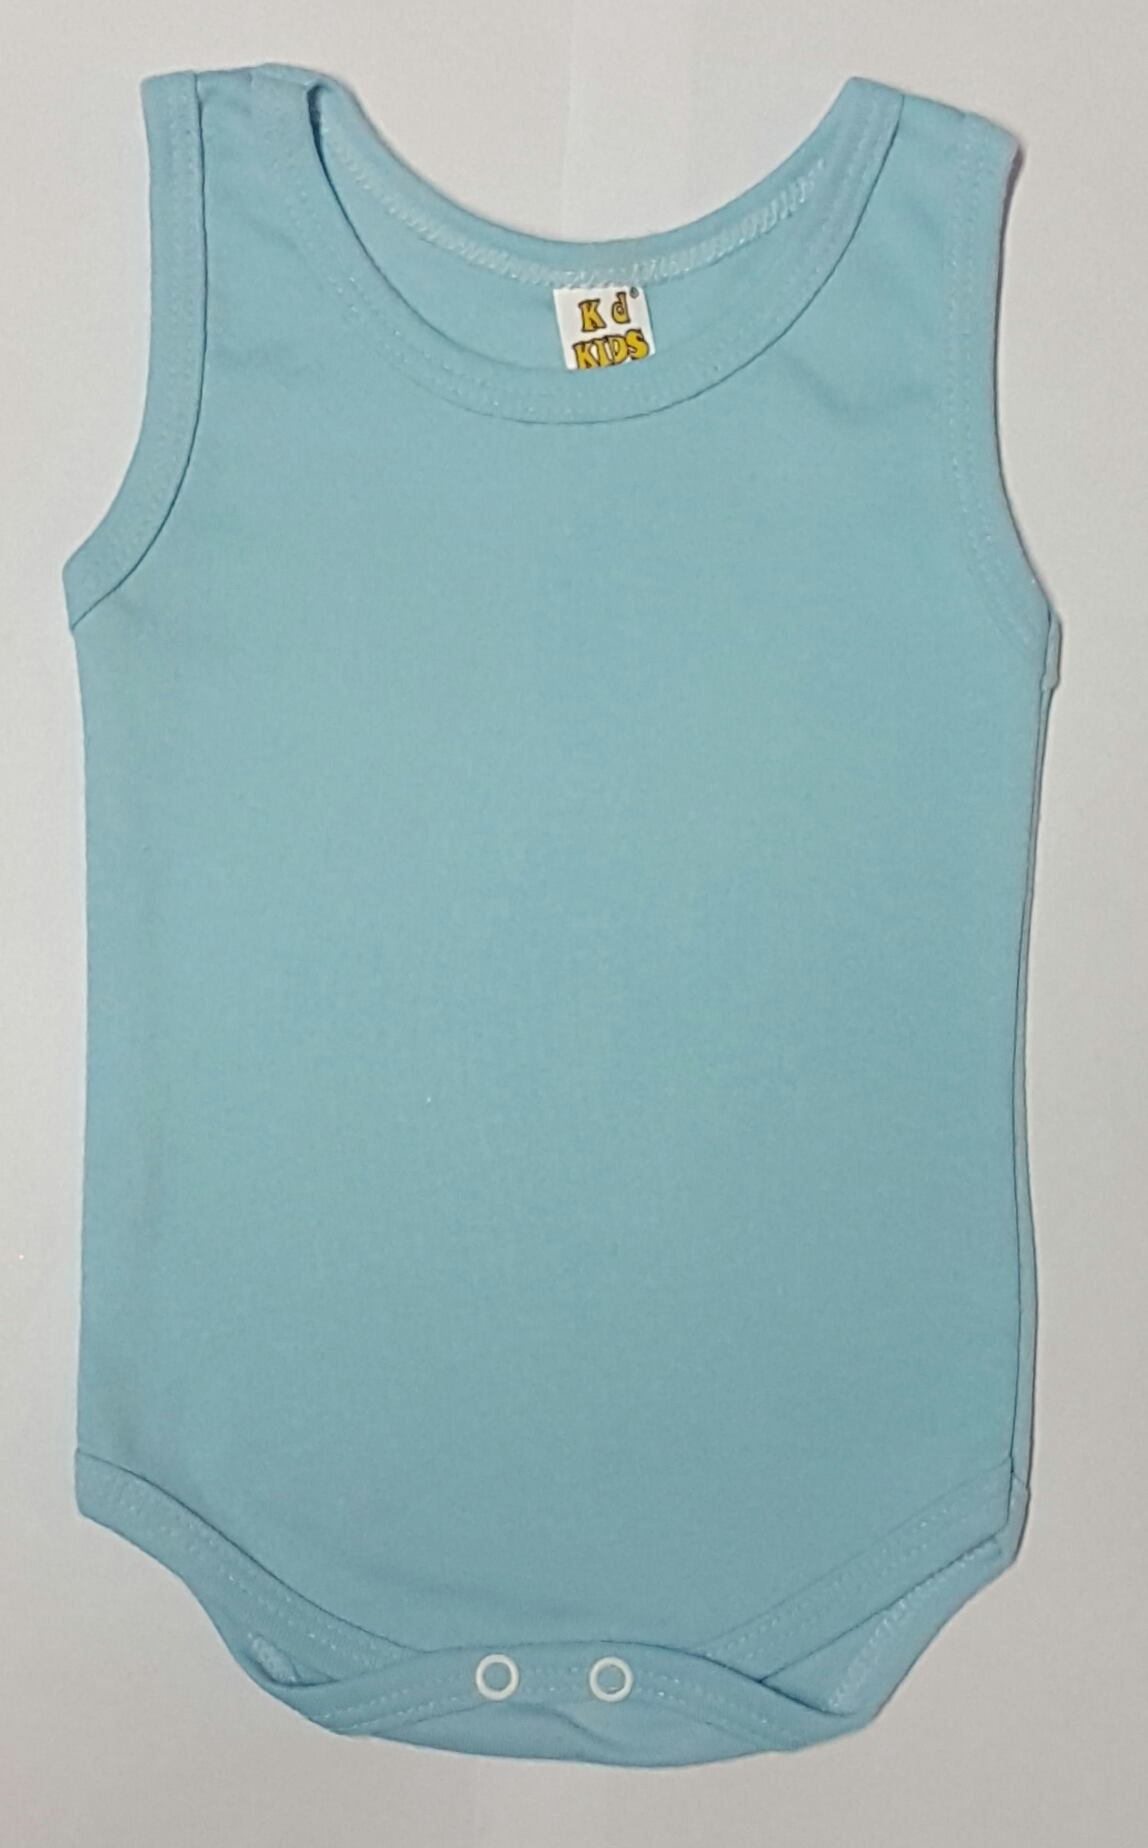 BODY KD KIDS REG AZUL P